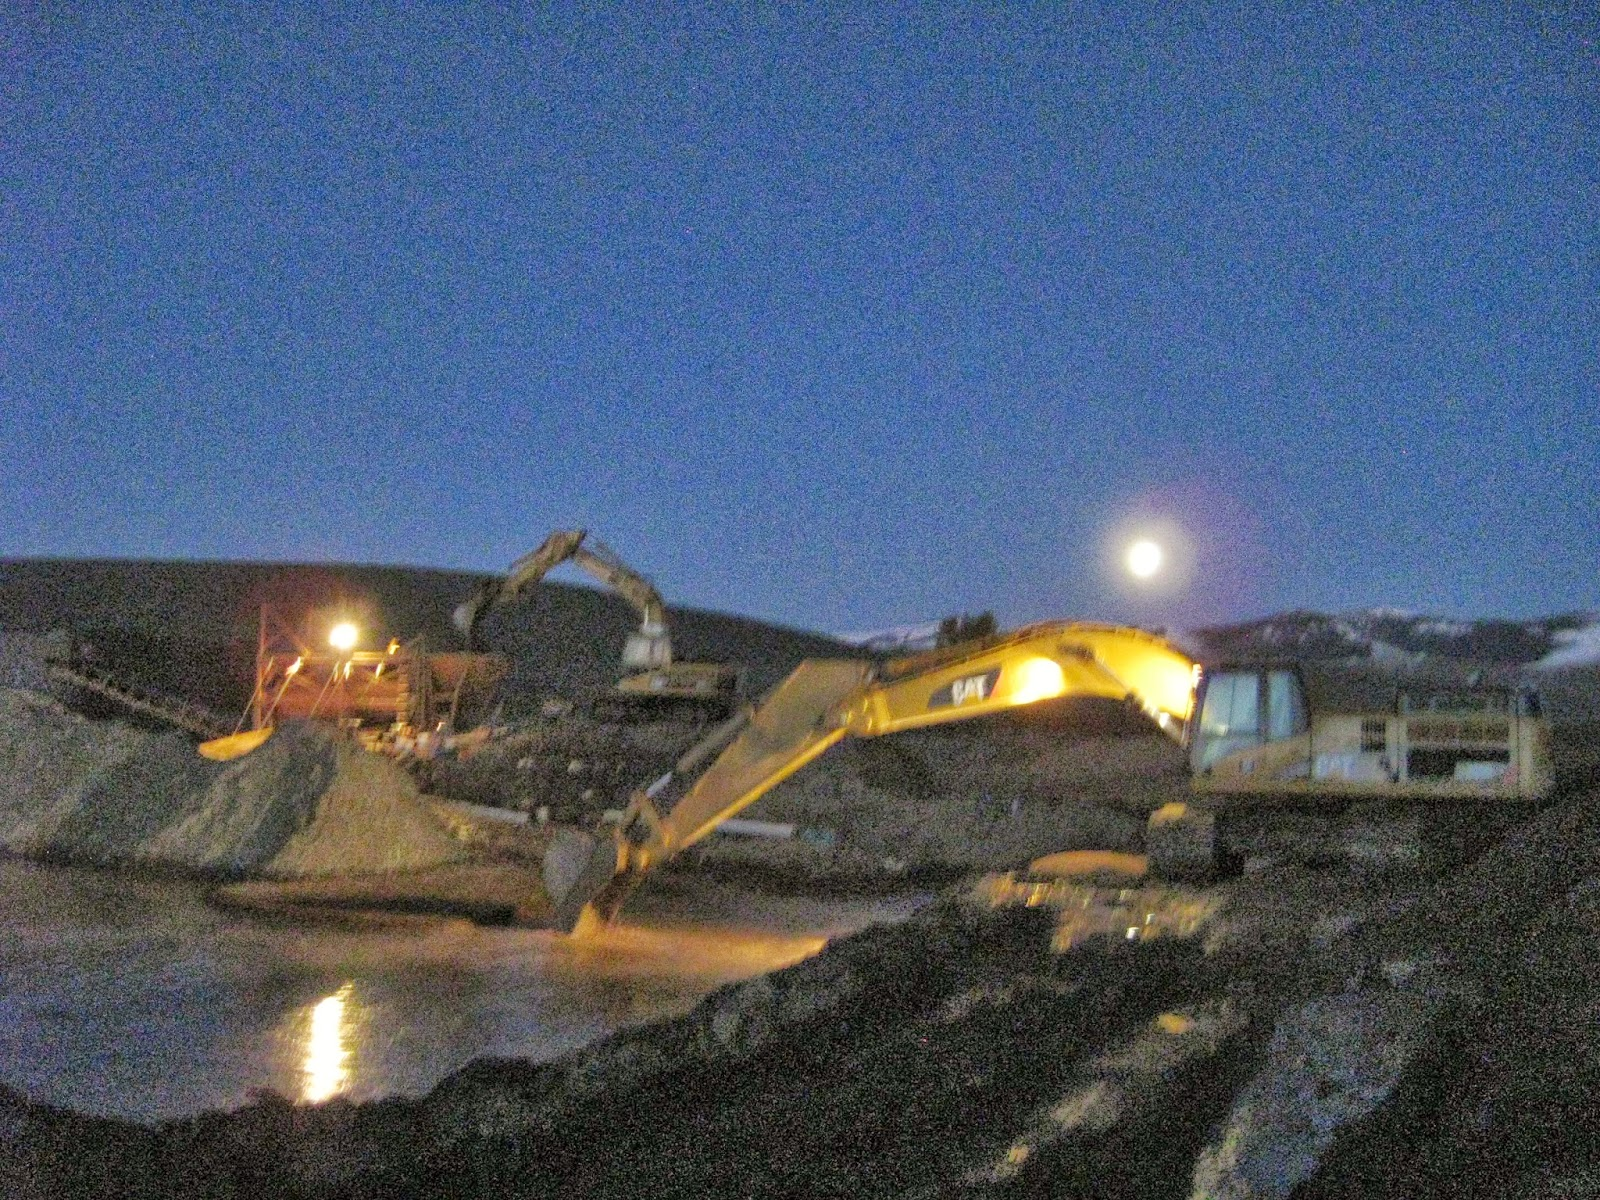 Gold mining under and October moon in Montana